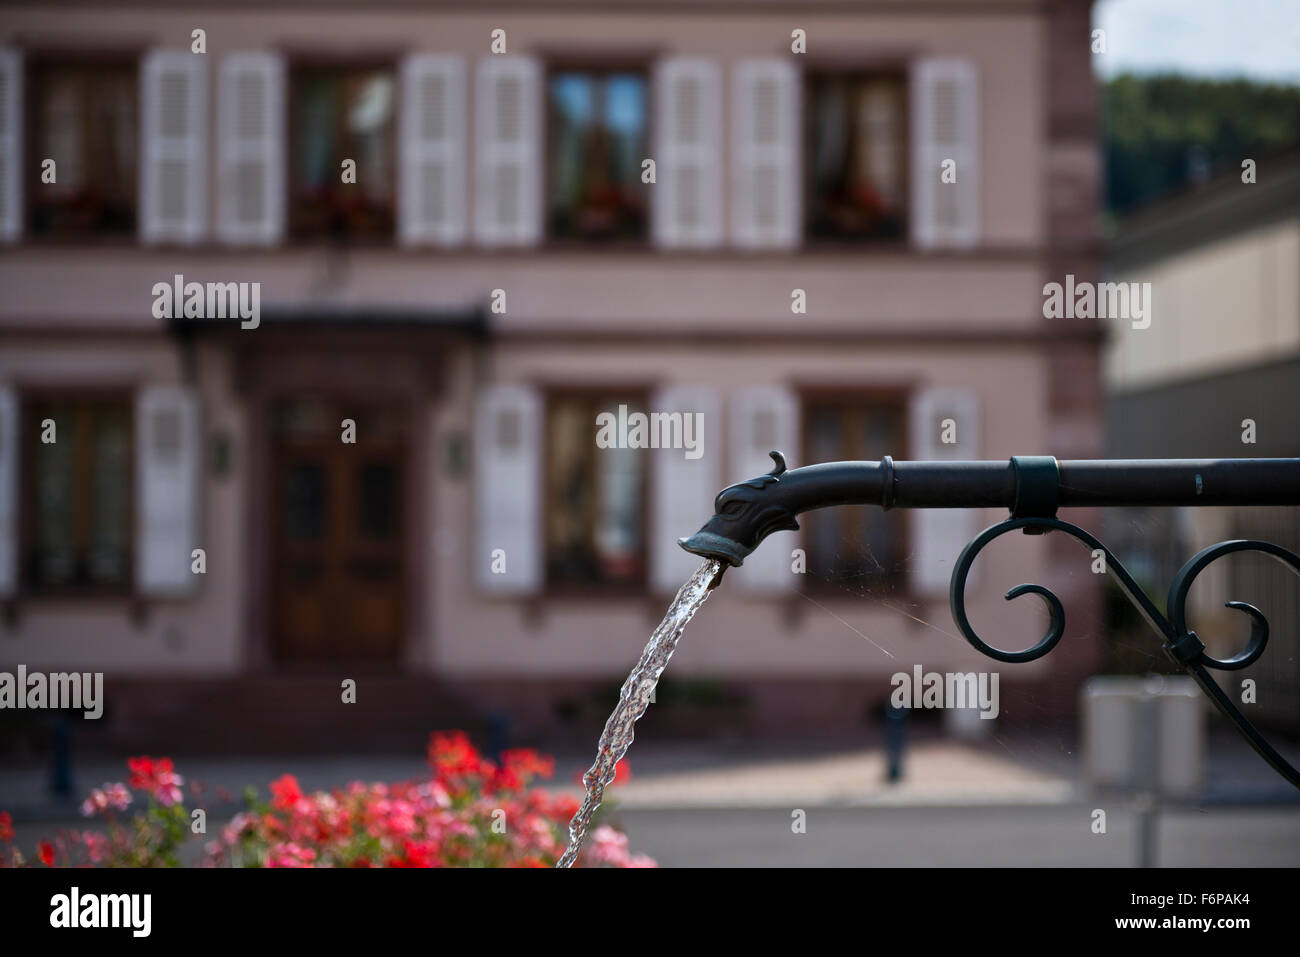 Fountain in the center of Sainte-Marie-aux-Mines which depicts the same fictitious creature on all 4 sides. Stock Photo